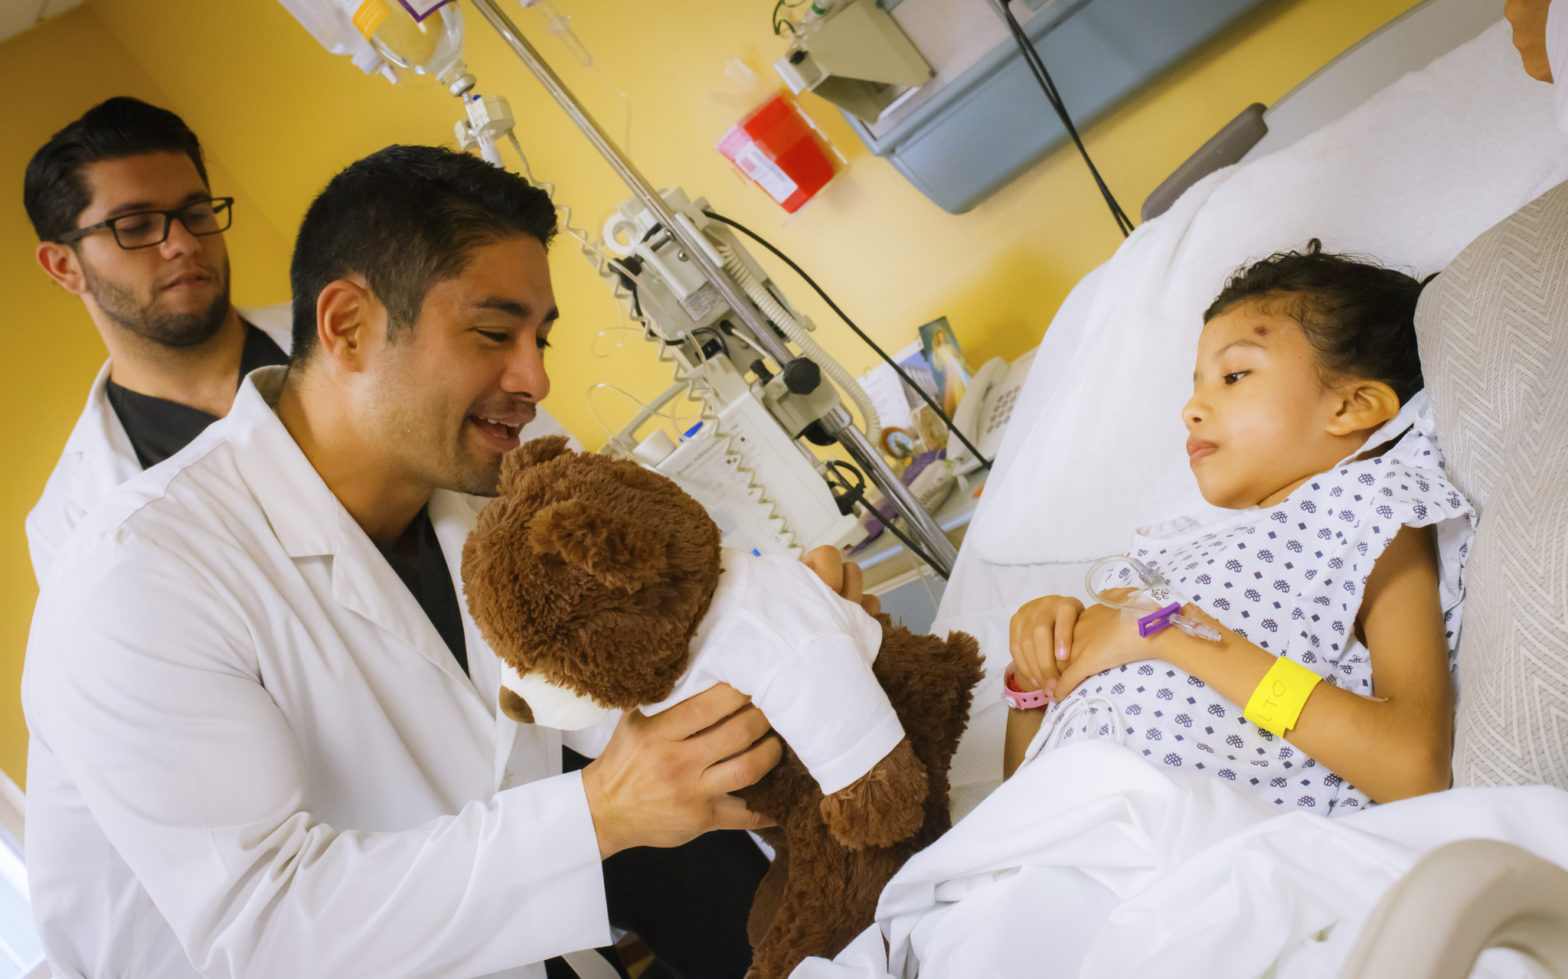 Patient child receiving teddy bear from doctor